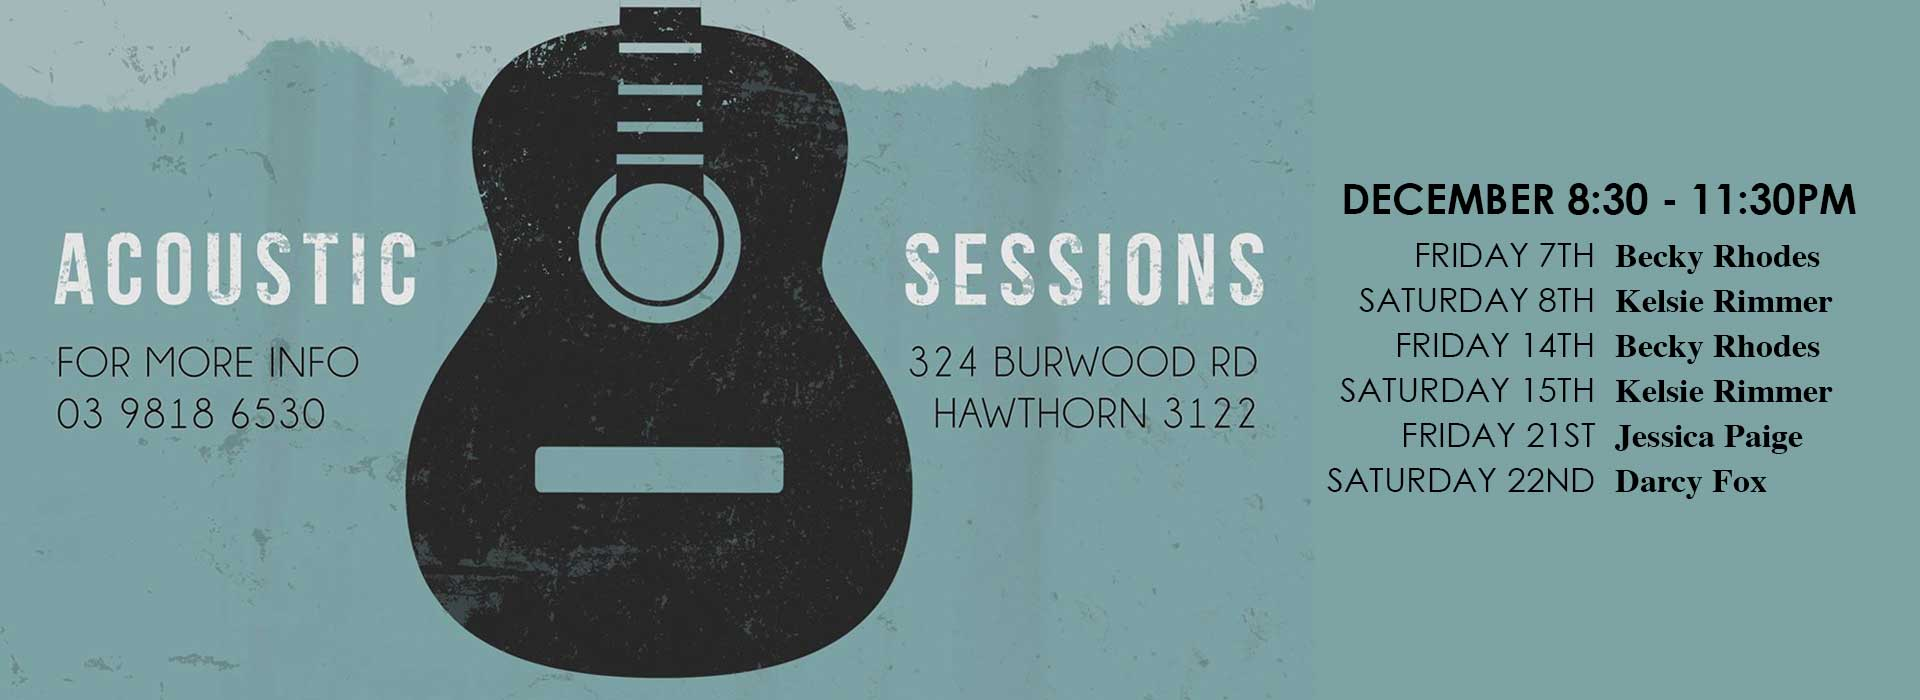 acoustic sessions Friday Saturday Glenferrie